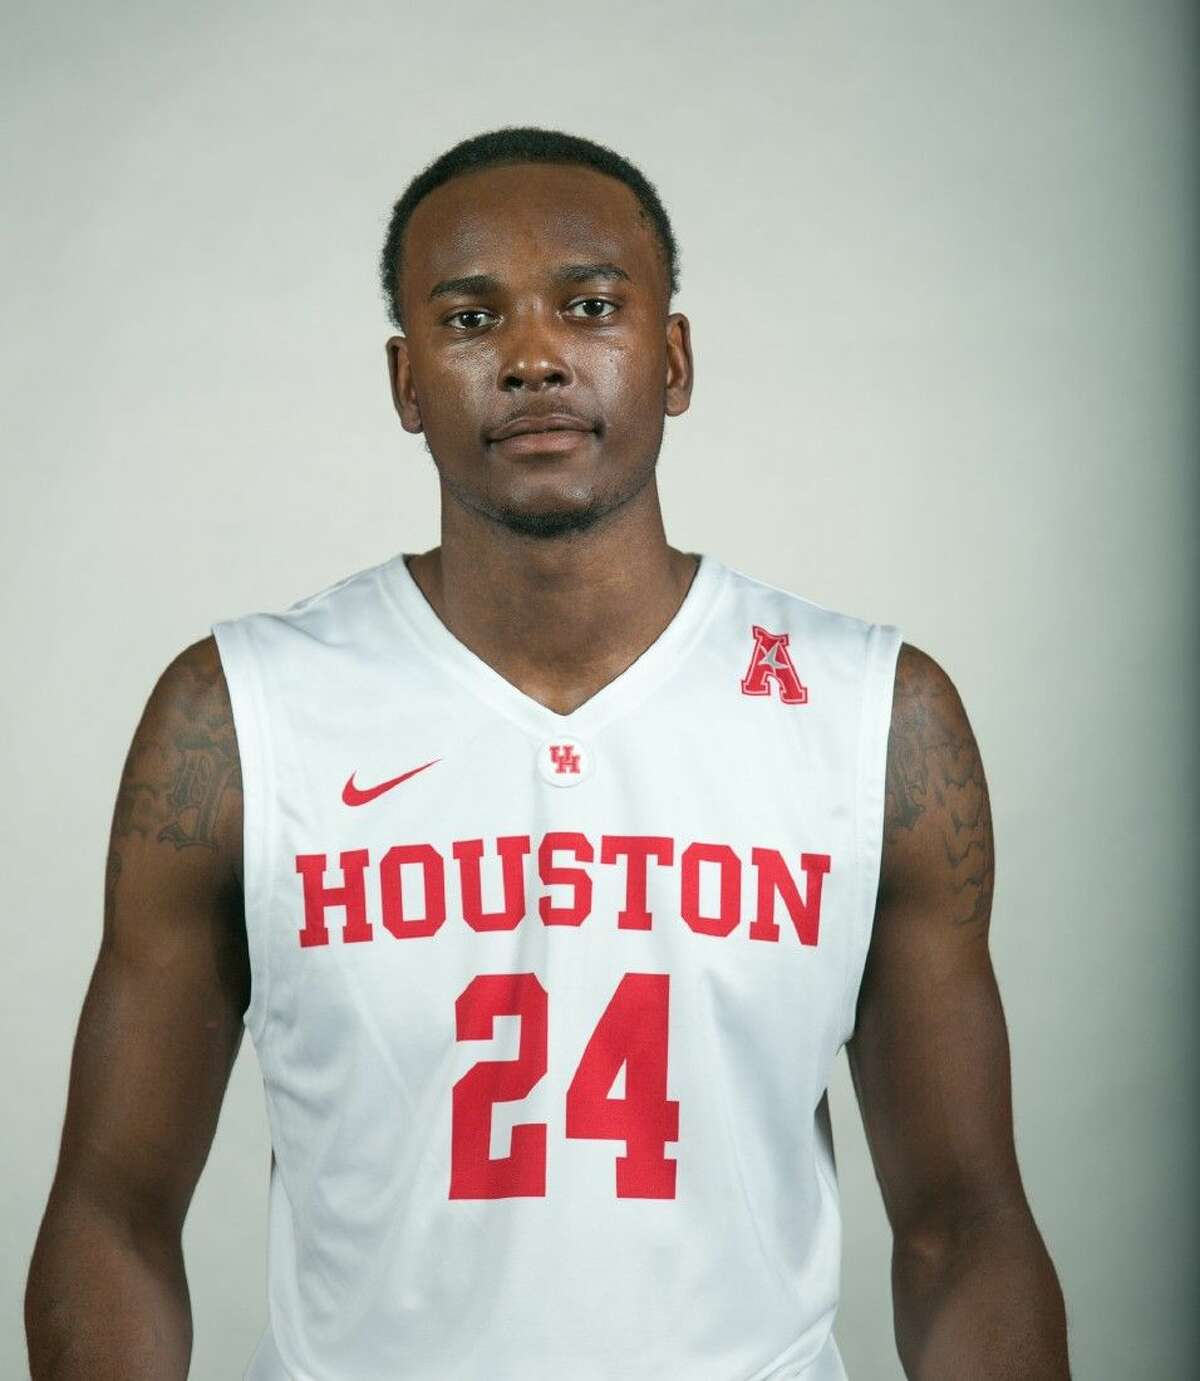 For the second time this season, University of Houston junior forward Devonta Pollard was named to the American Athletic Conference Weekly Honor Roll on Monday.